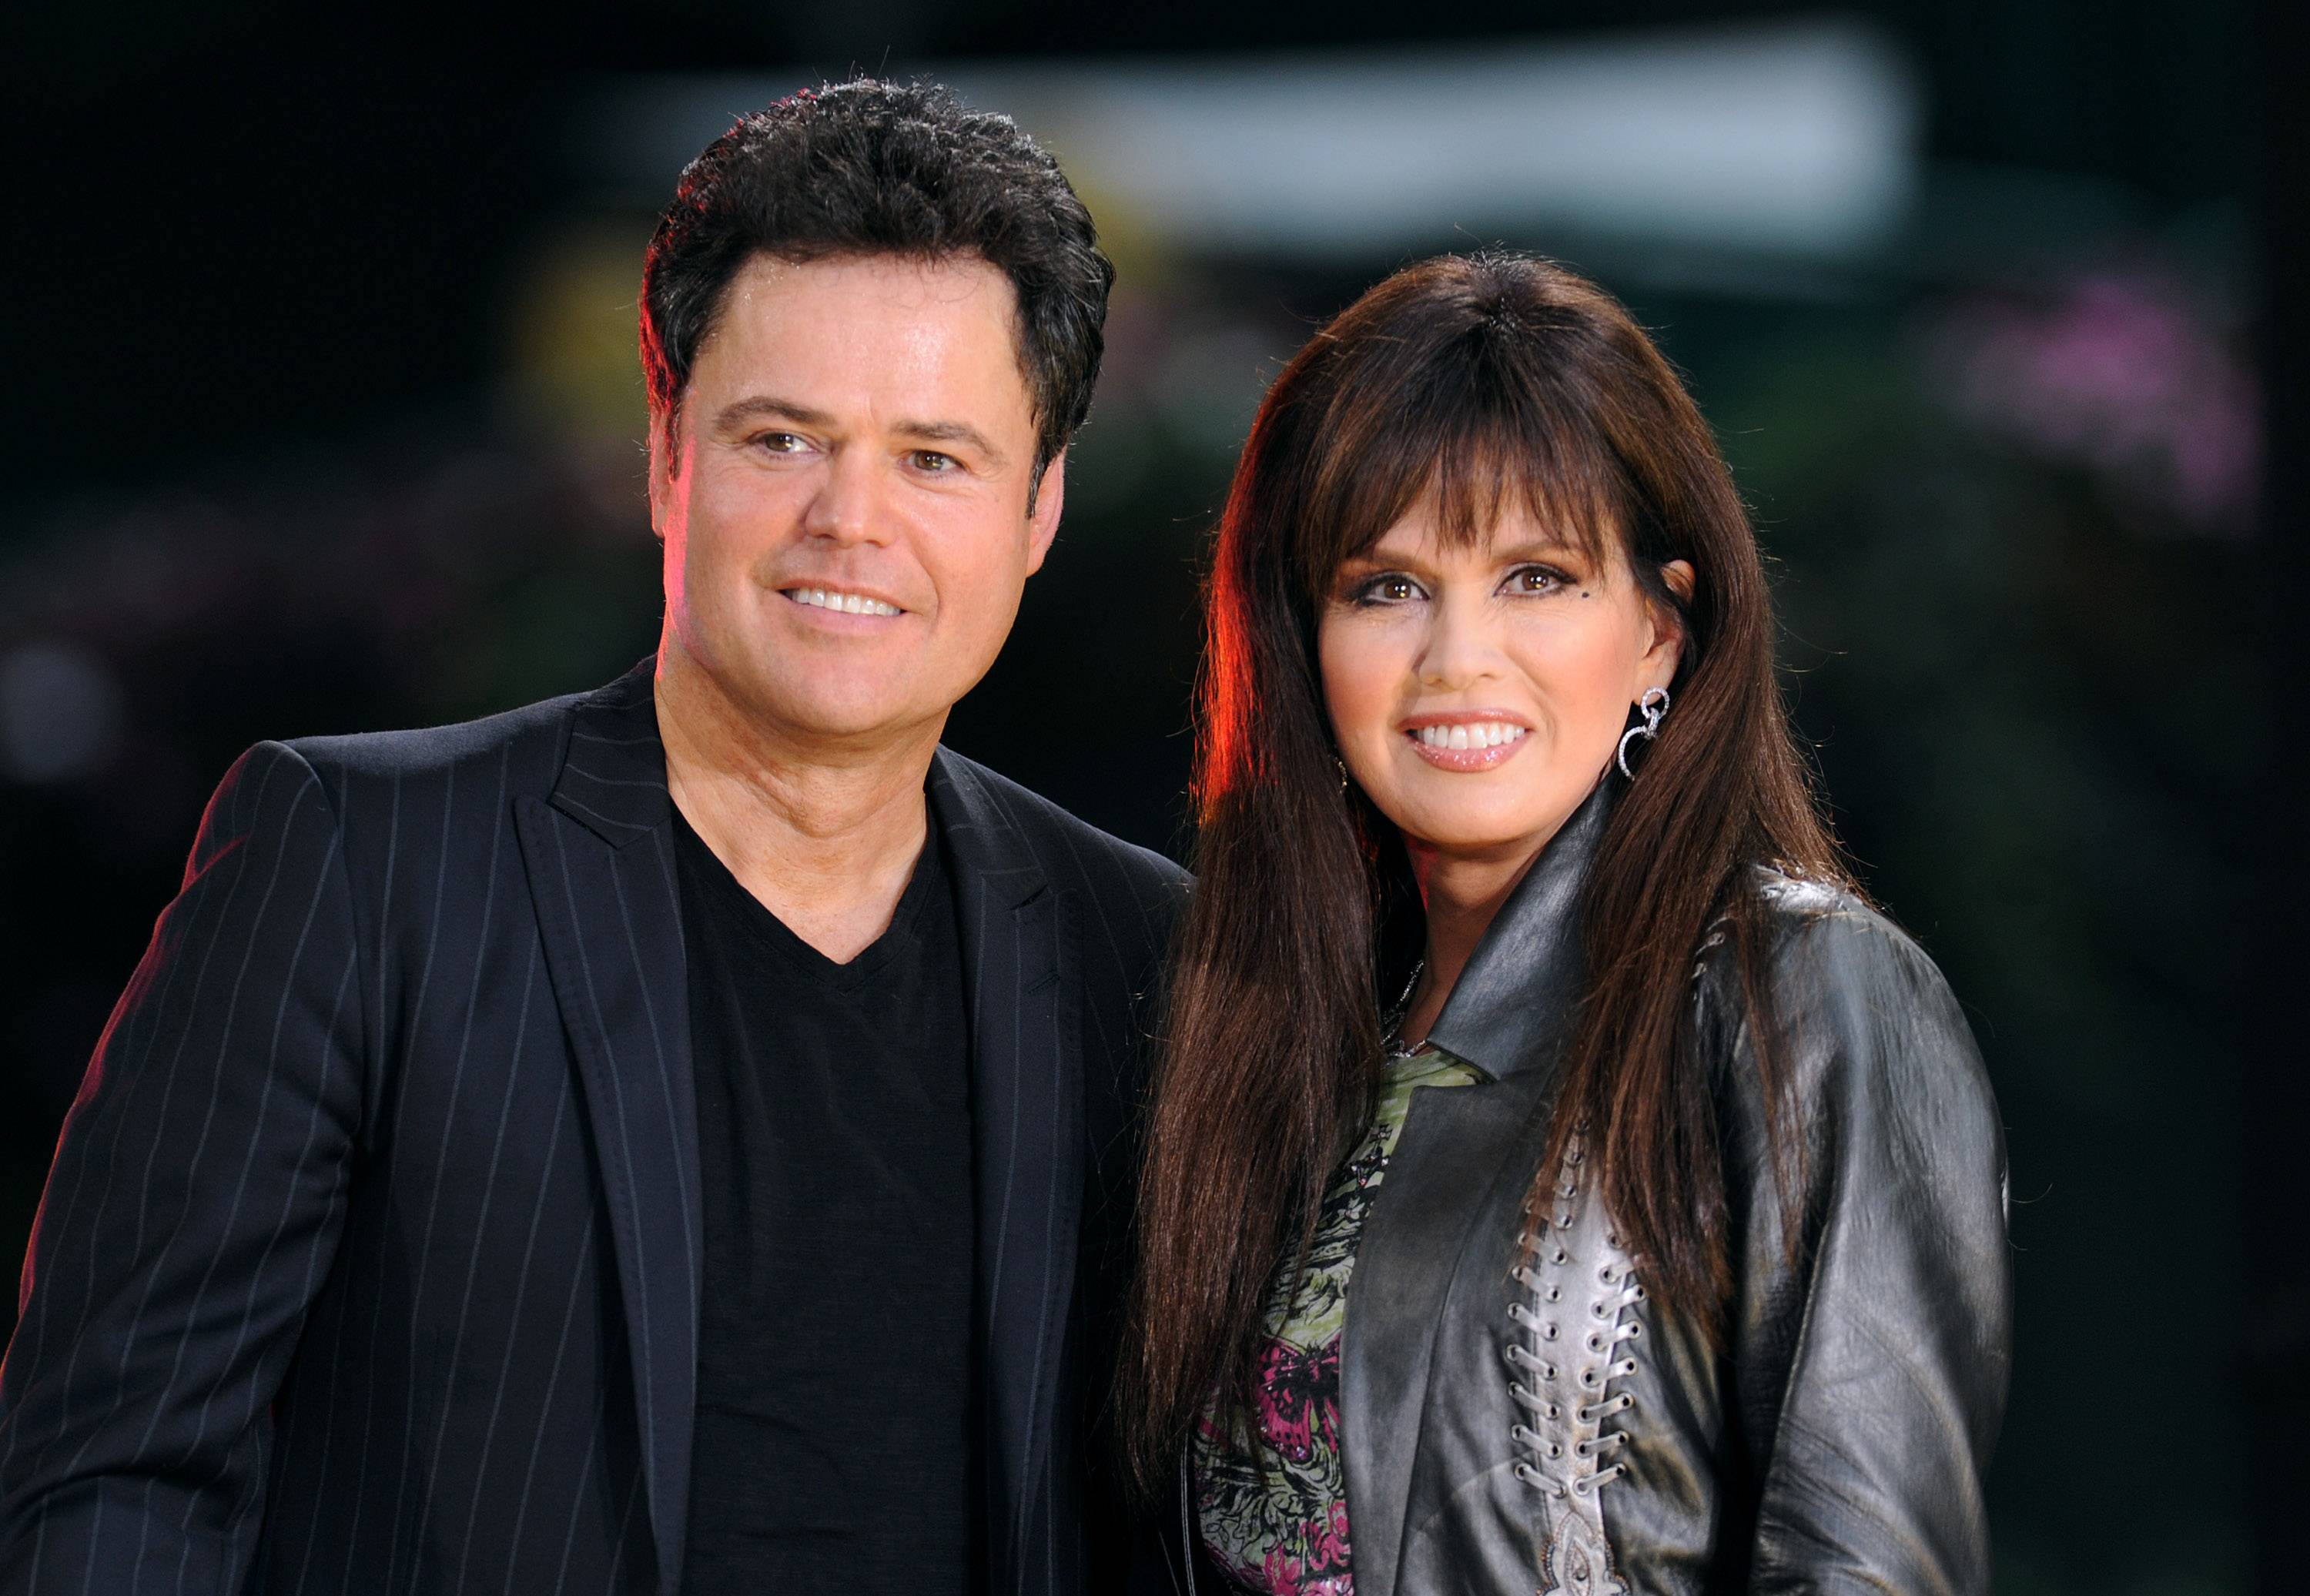 Donny & Marie Osmond appear at the Paramount Theatre from Wednesday, Aug. 27, through Sunday, Aug. 31.